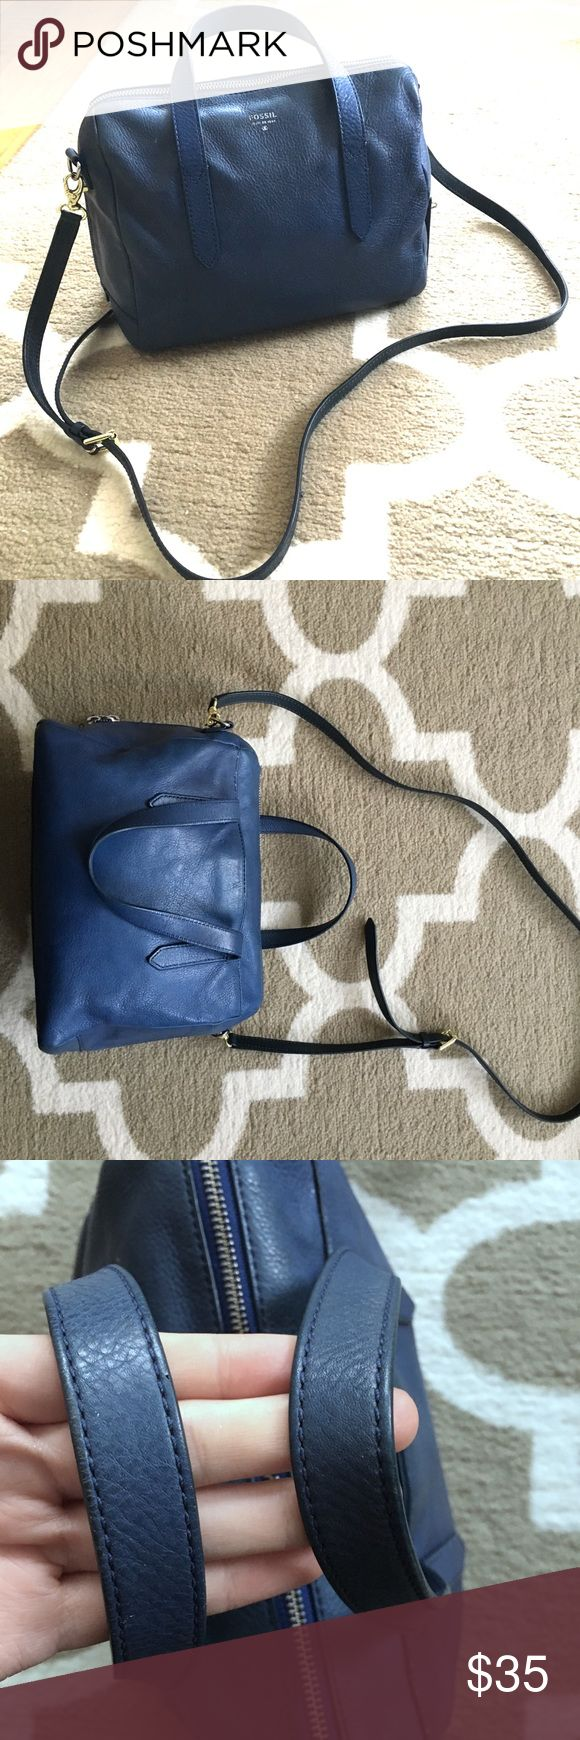 """Fossil Sydney Satchel Bag Purse Soft navy blue leather 5.5"""" handles 21"""" strap 10.5""""x5.5""""x8"""" Cut on the bottom repaired with leather glue Right zipper missing a tab, but left zipper closes all the way around Fossil Bags Satchels"""